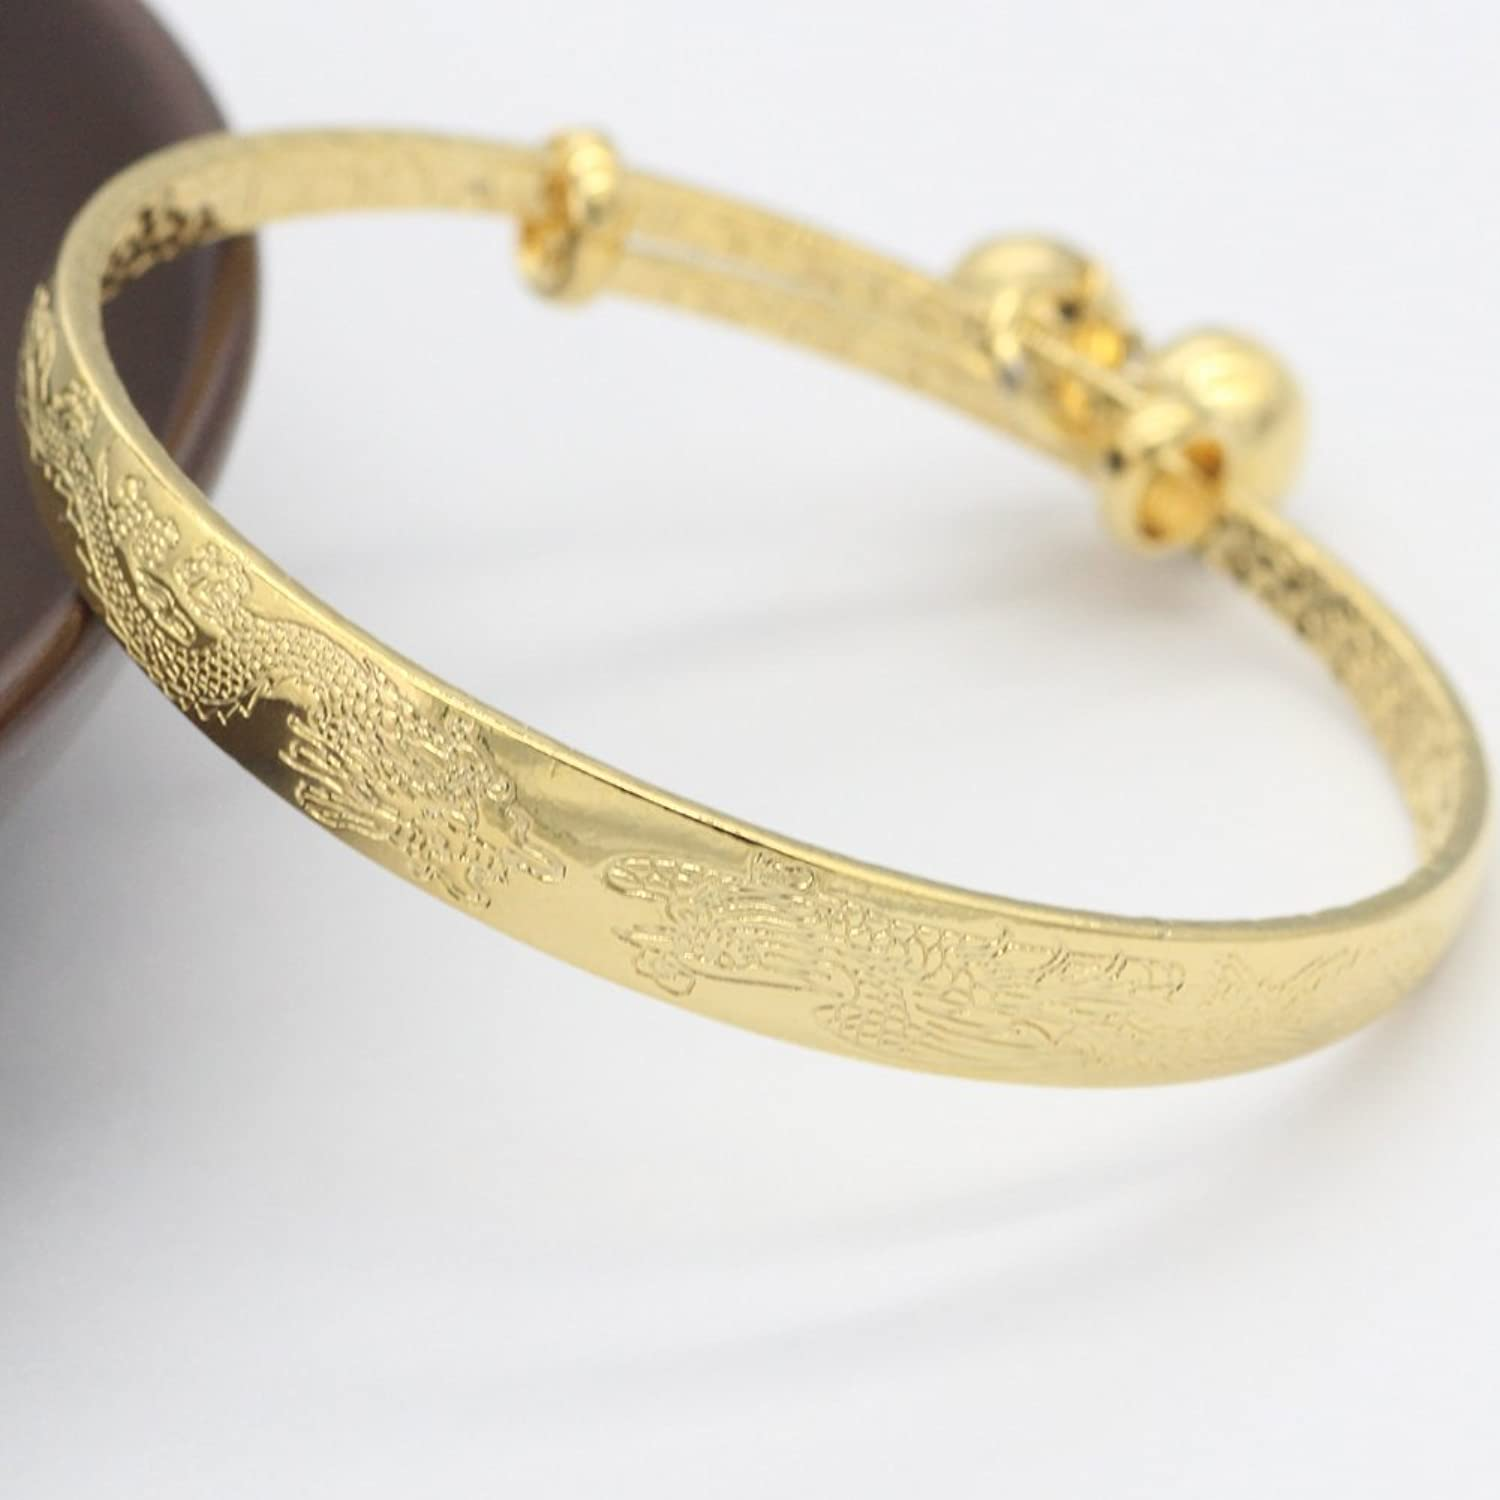 bangles baby bracelet itm plated heart bangle girls gold bell kids jewelry infant boys children